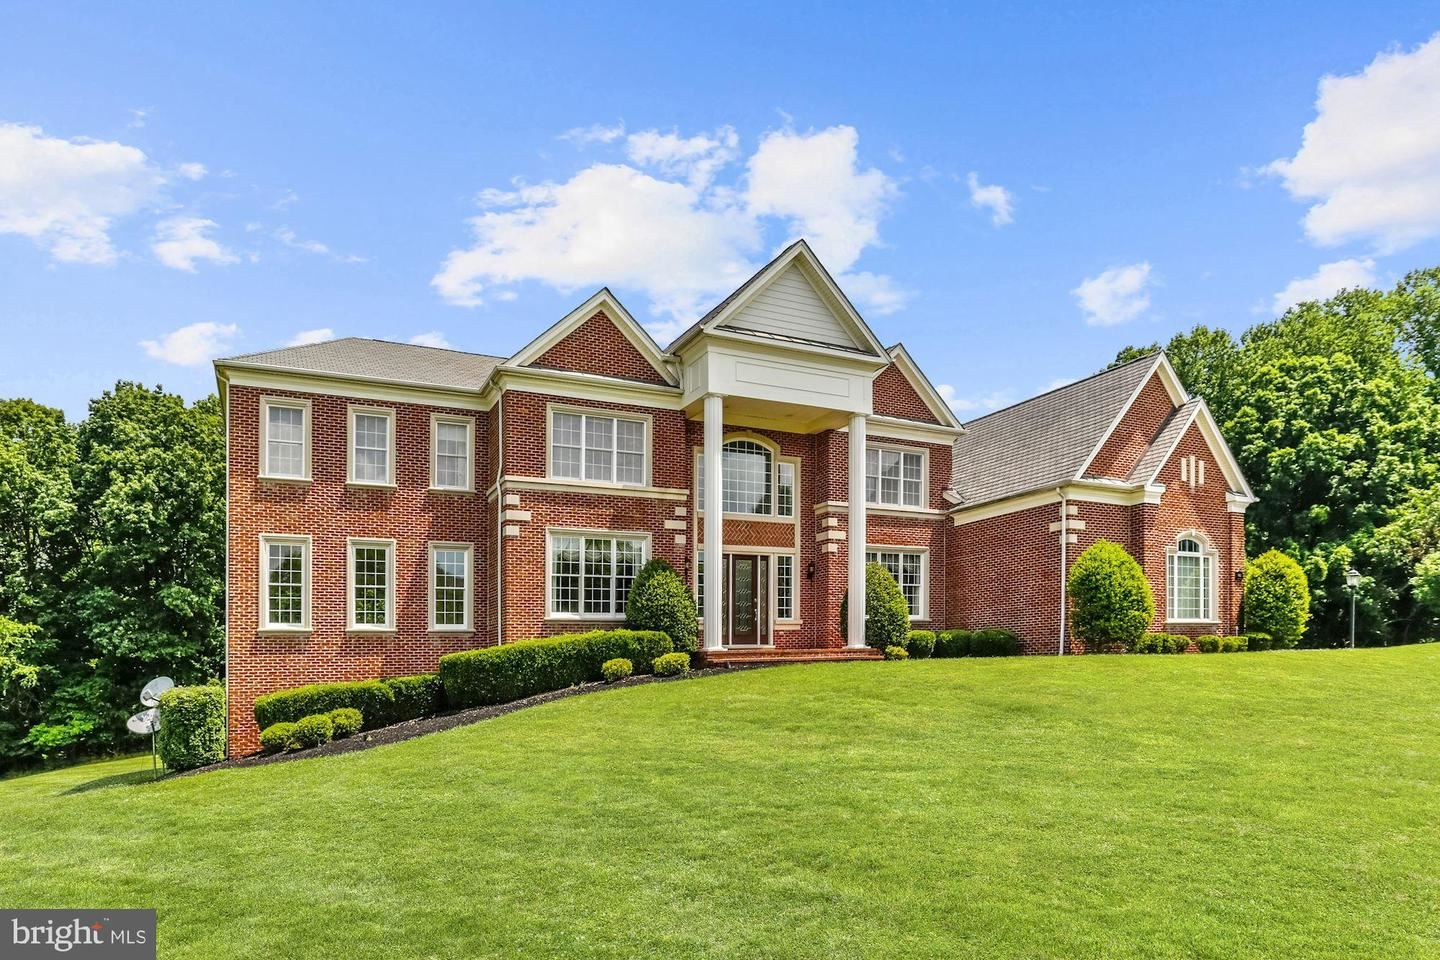 4962 VALLEY VIEW OVERLOOK, Ellicott City, MD 21042 - MLS#: MDHW286940